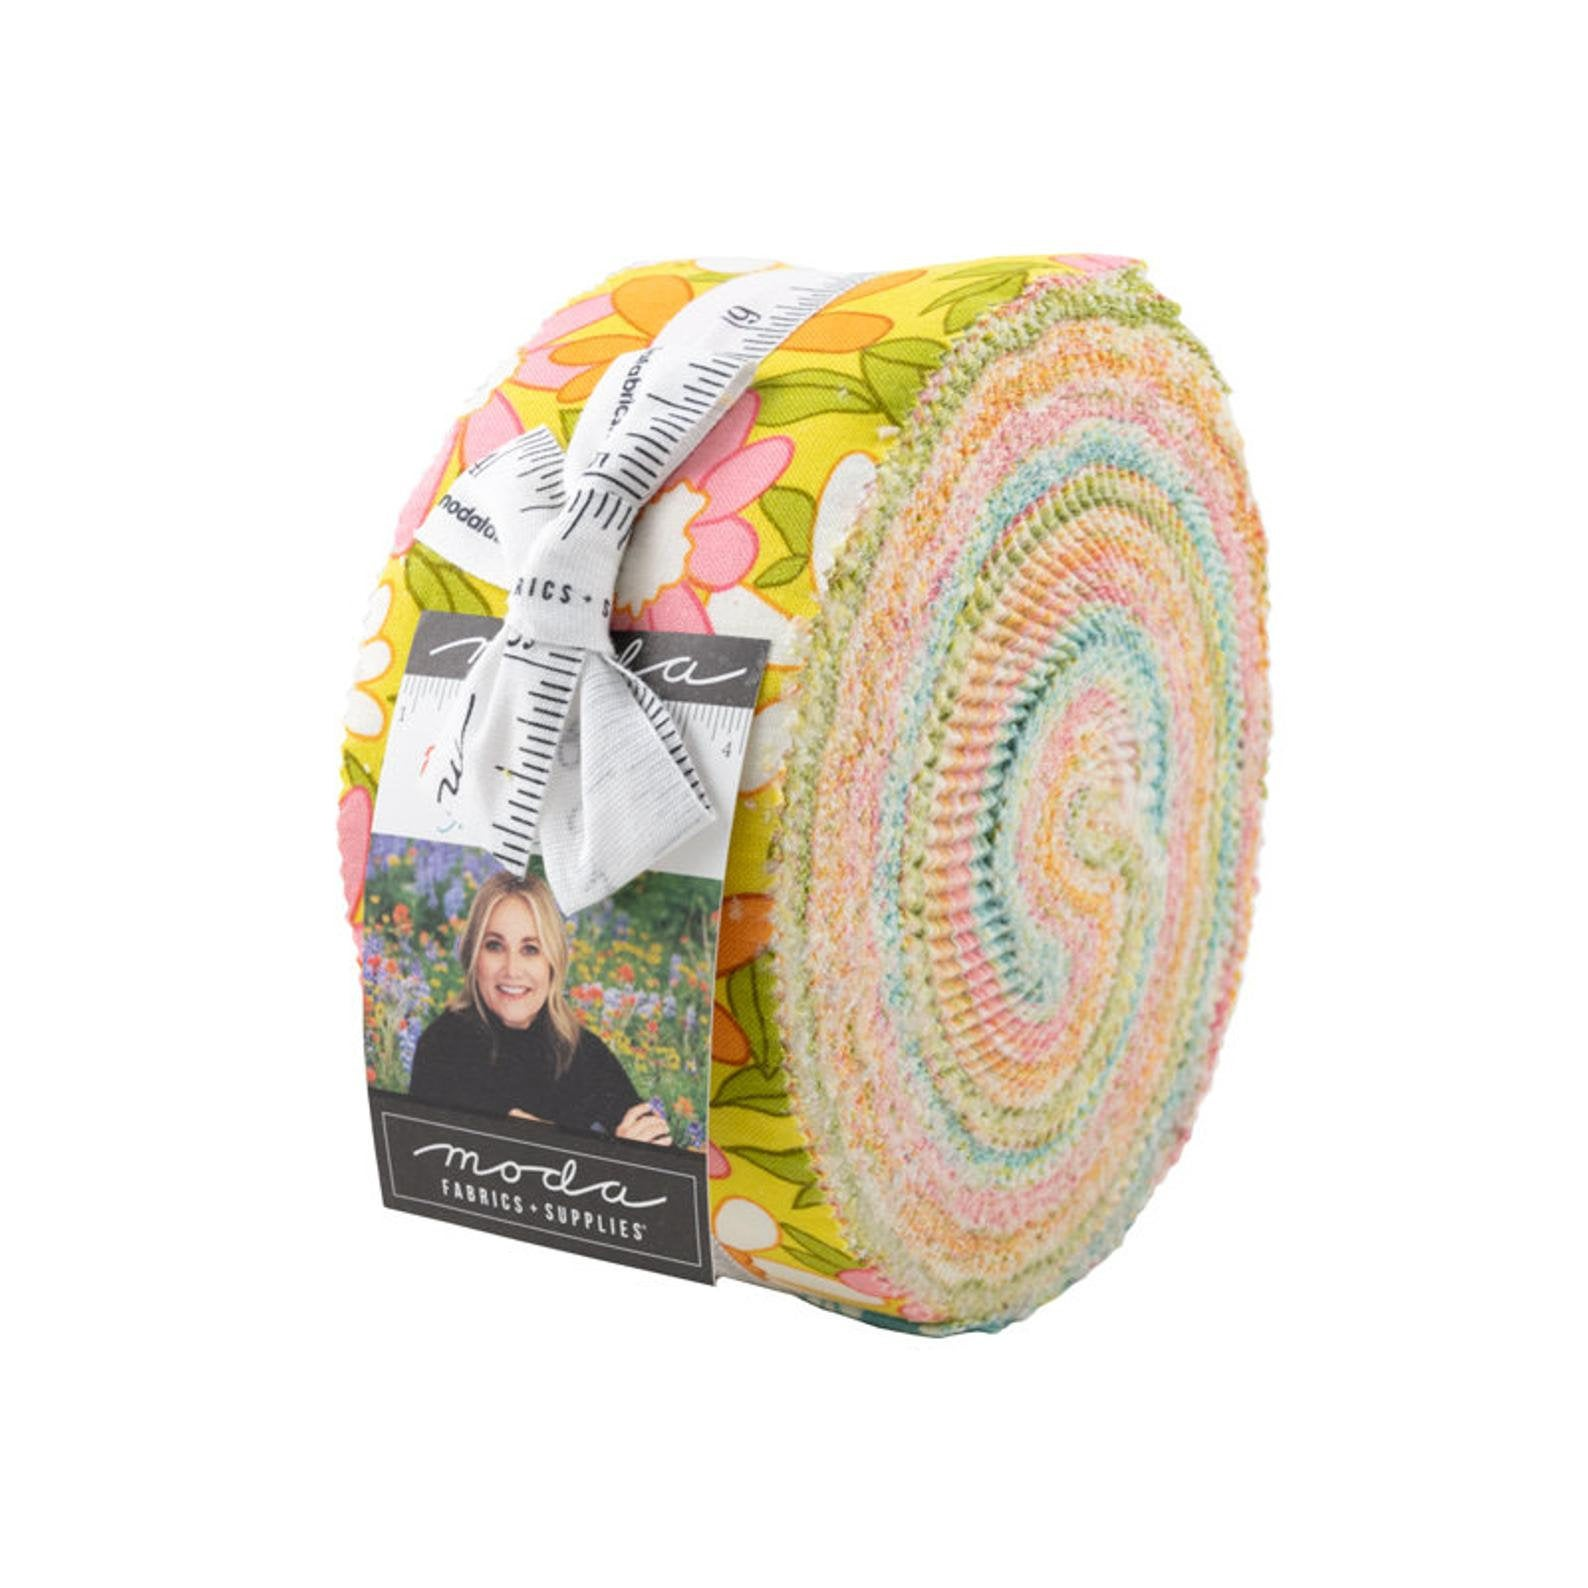 A Blooming Bunch, Jelly Roll, 40046JR, 40 2.5 x 44 Pieces by Maureen McCormick for Moda Fabrics